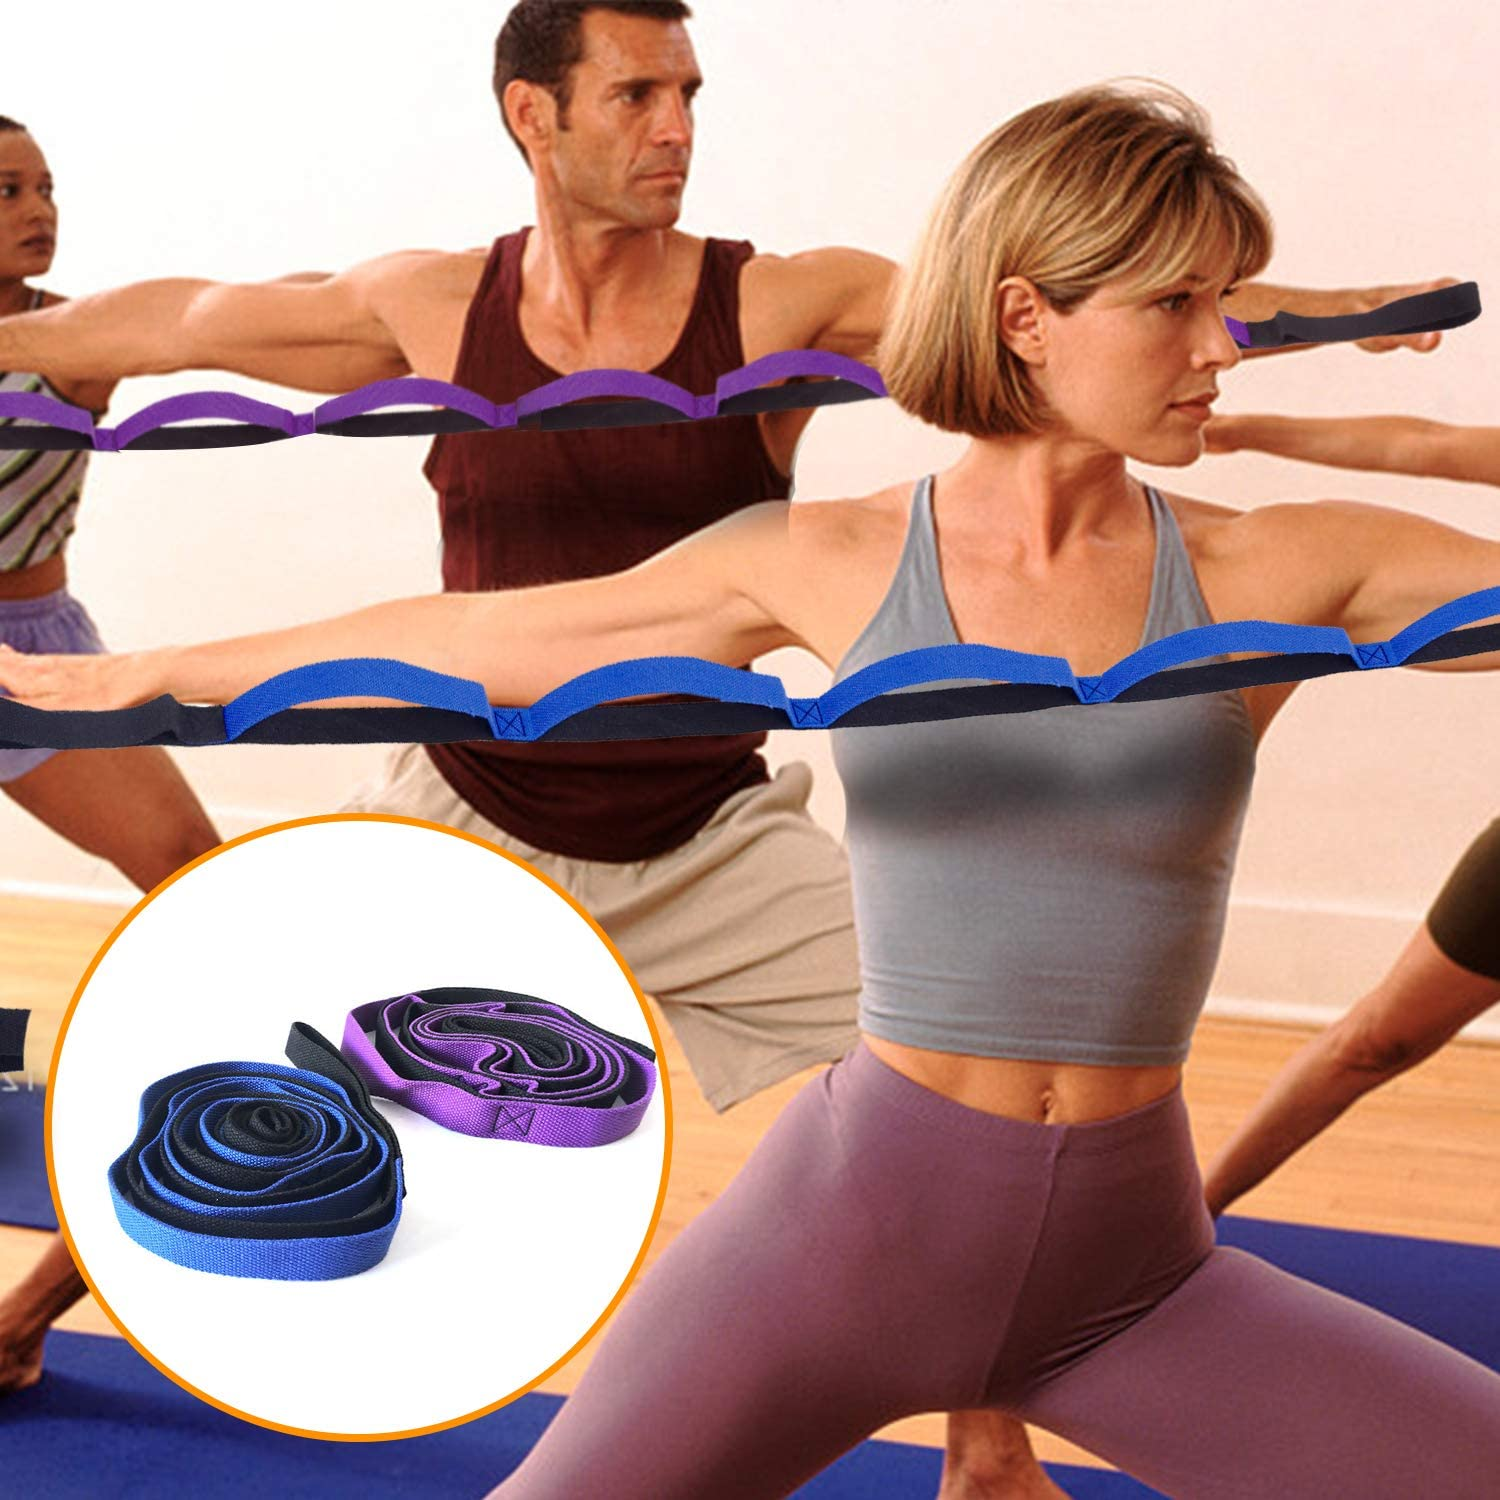 Dance and Gymnastics with 8 Loops Fitness Strength Training Rope Nonelastic Belt with Carry Bag Vetoo Stretch Strap,Yoga Strap Exercise Physical Therapy Pilates